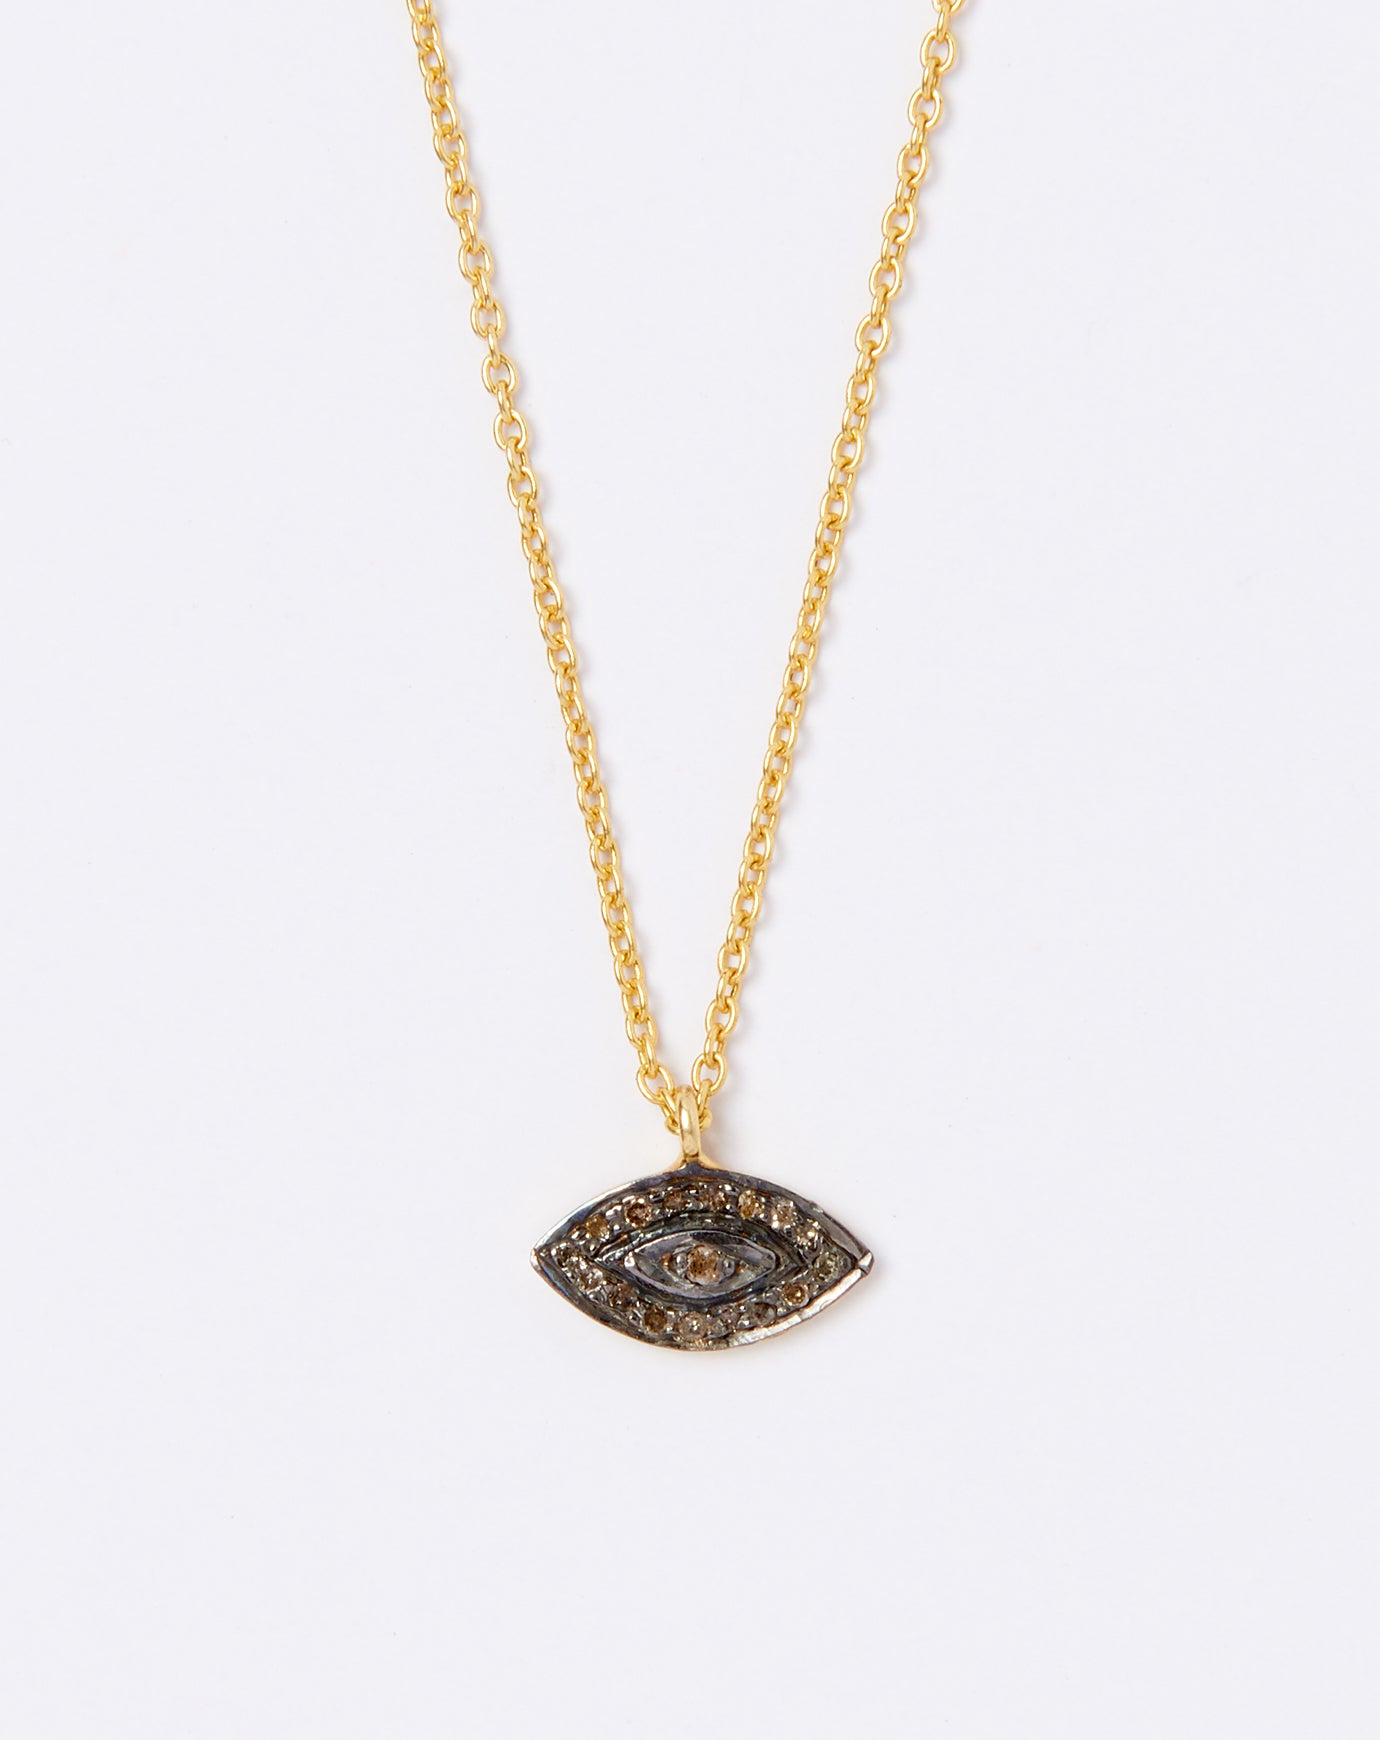 pendant charm luck good polished jewelry x genuine gold solid evil mm eye dp new com yellow fancy amazon design